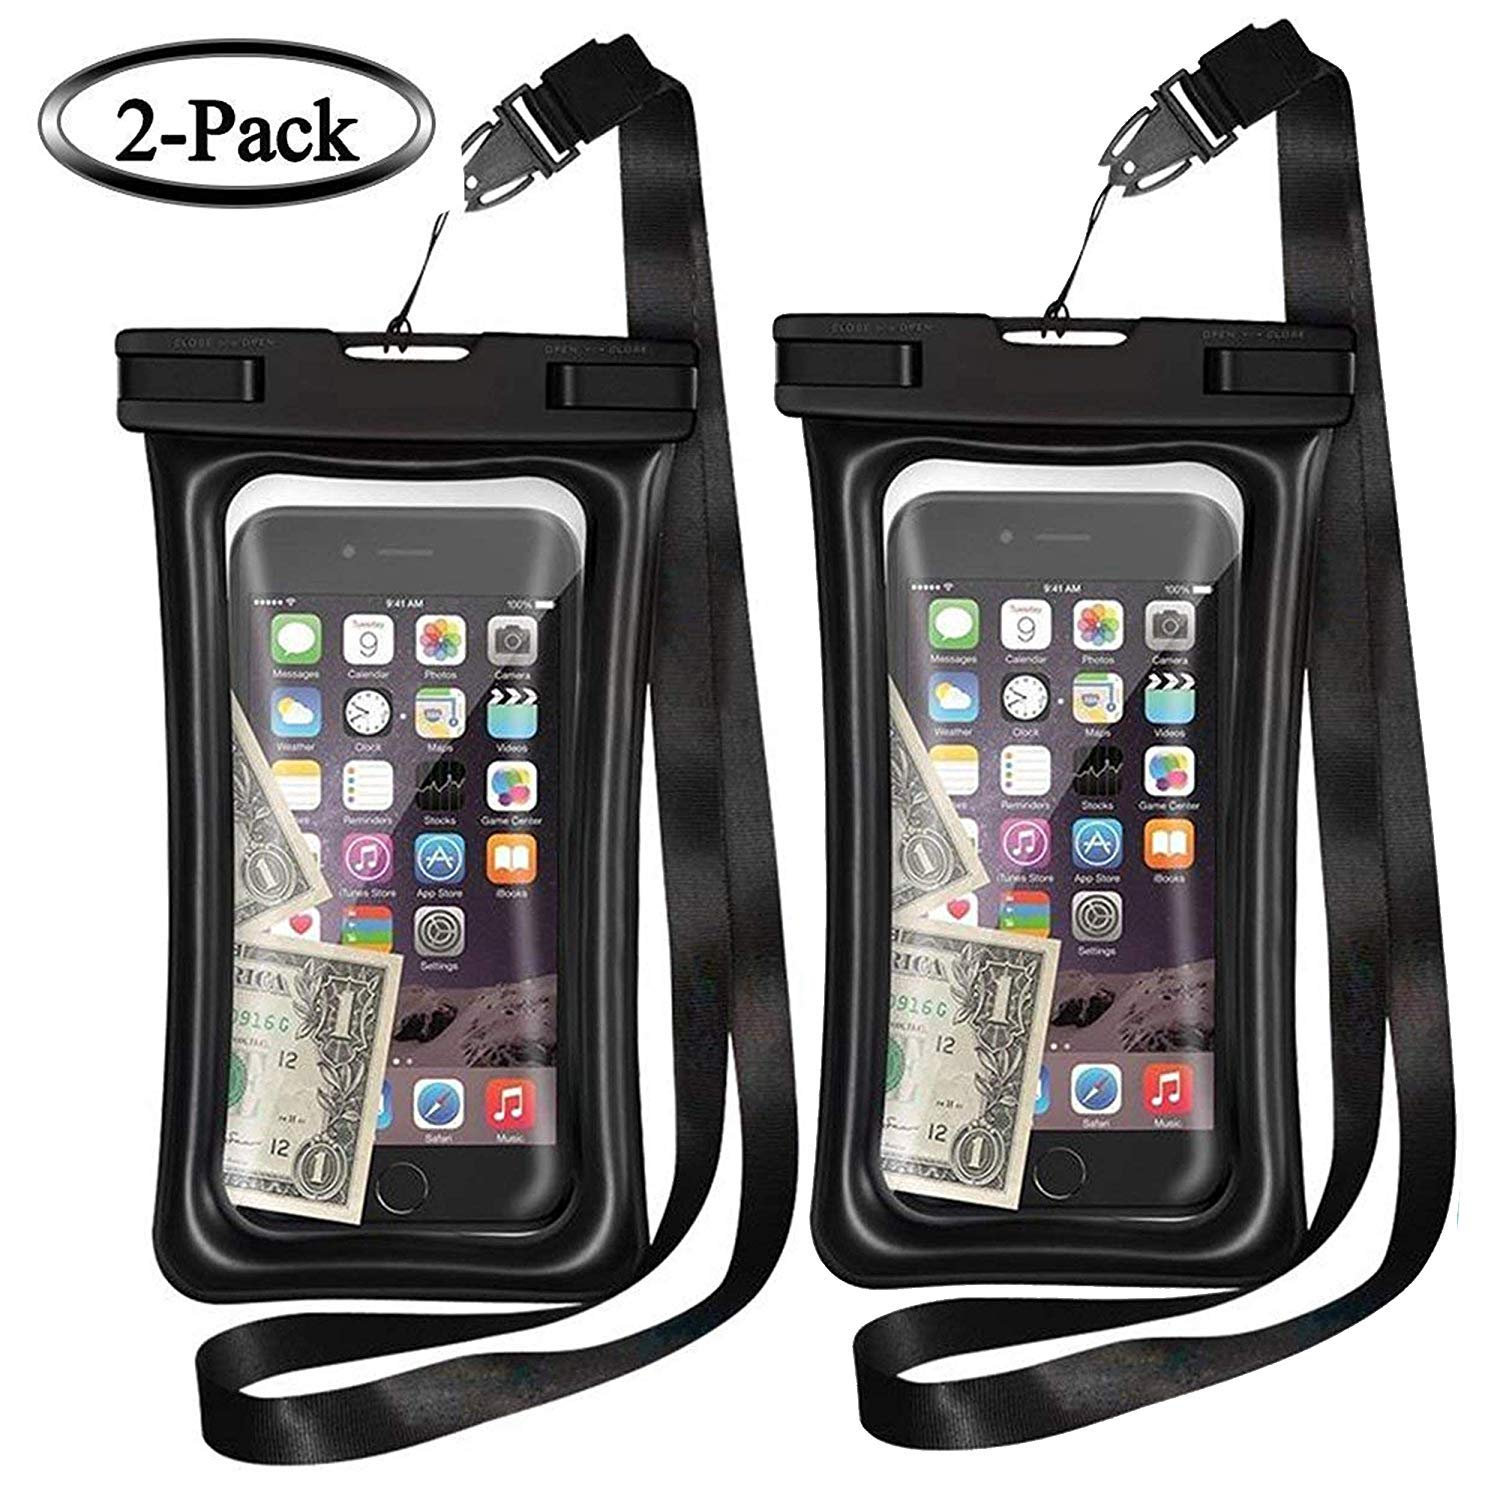 MQOUNY Waterproof Phone Pouch,2 Pack Floating Waterproof Case Waterproof Phone Case IPX8 Available TPU Clear Dry Bag for iPhoneXs/Xs Max/XR/8/8plus/7/6s/6/6s Plus Samsung up to 6.5'' (Black-Black)